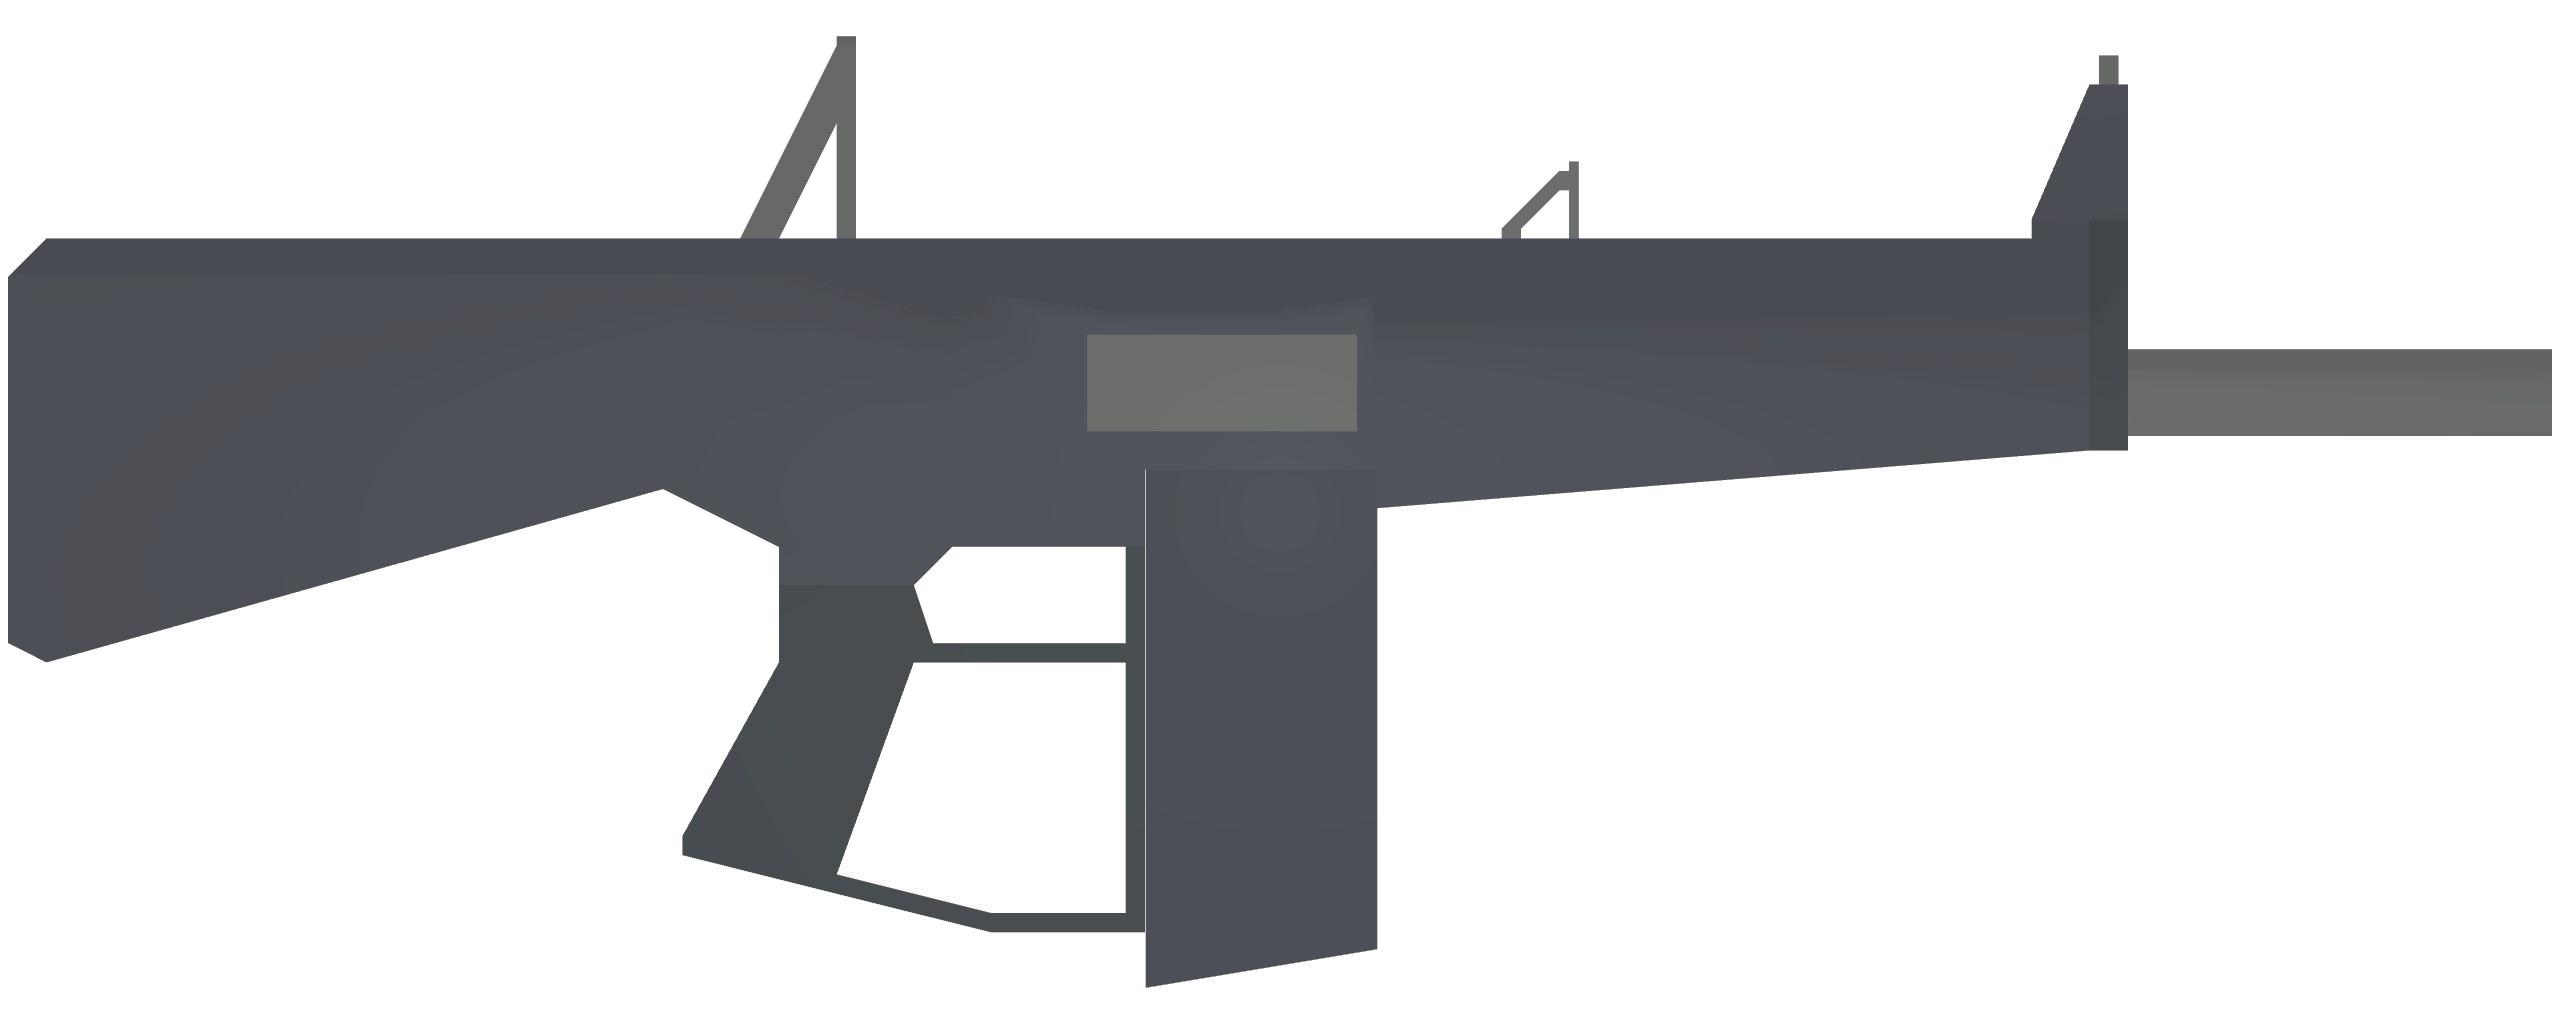 Unturned - All Weapons ID's for Uncreated Warfare Mods - USA Weapons - E3836E8